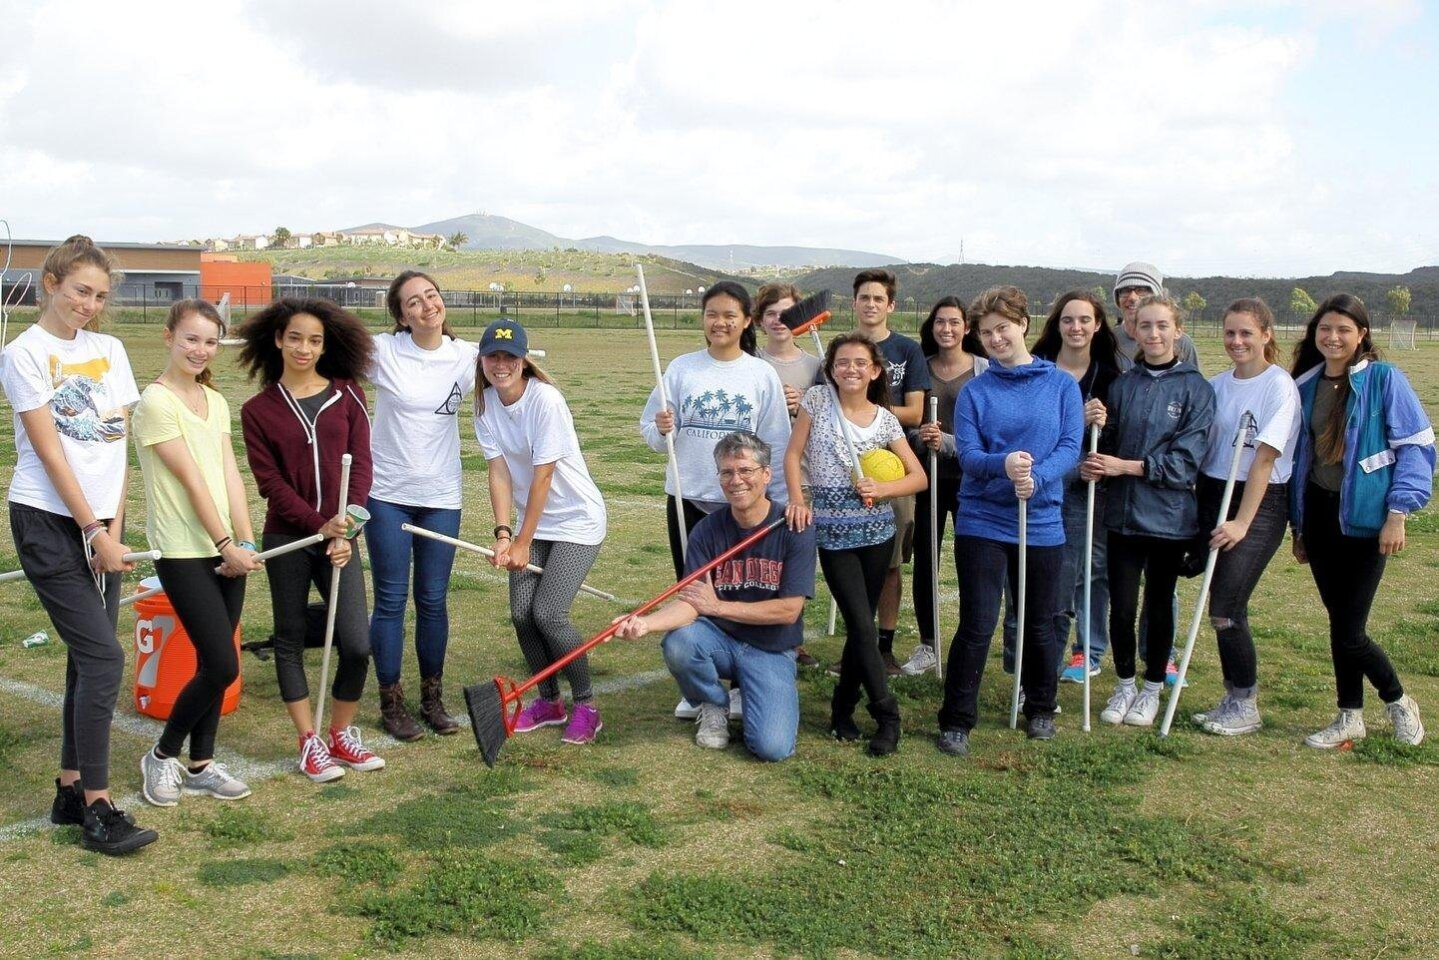 Students participated in a Potter Walk to raise funds for the Carmel Valley Library media system